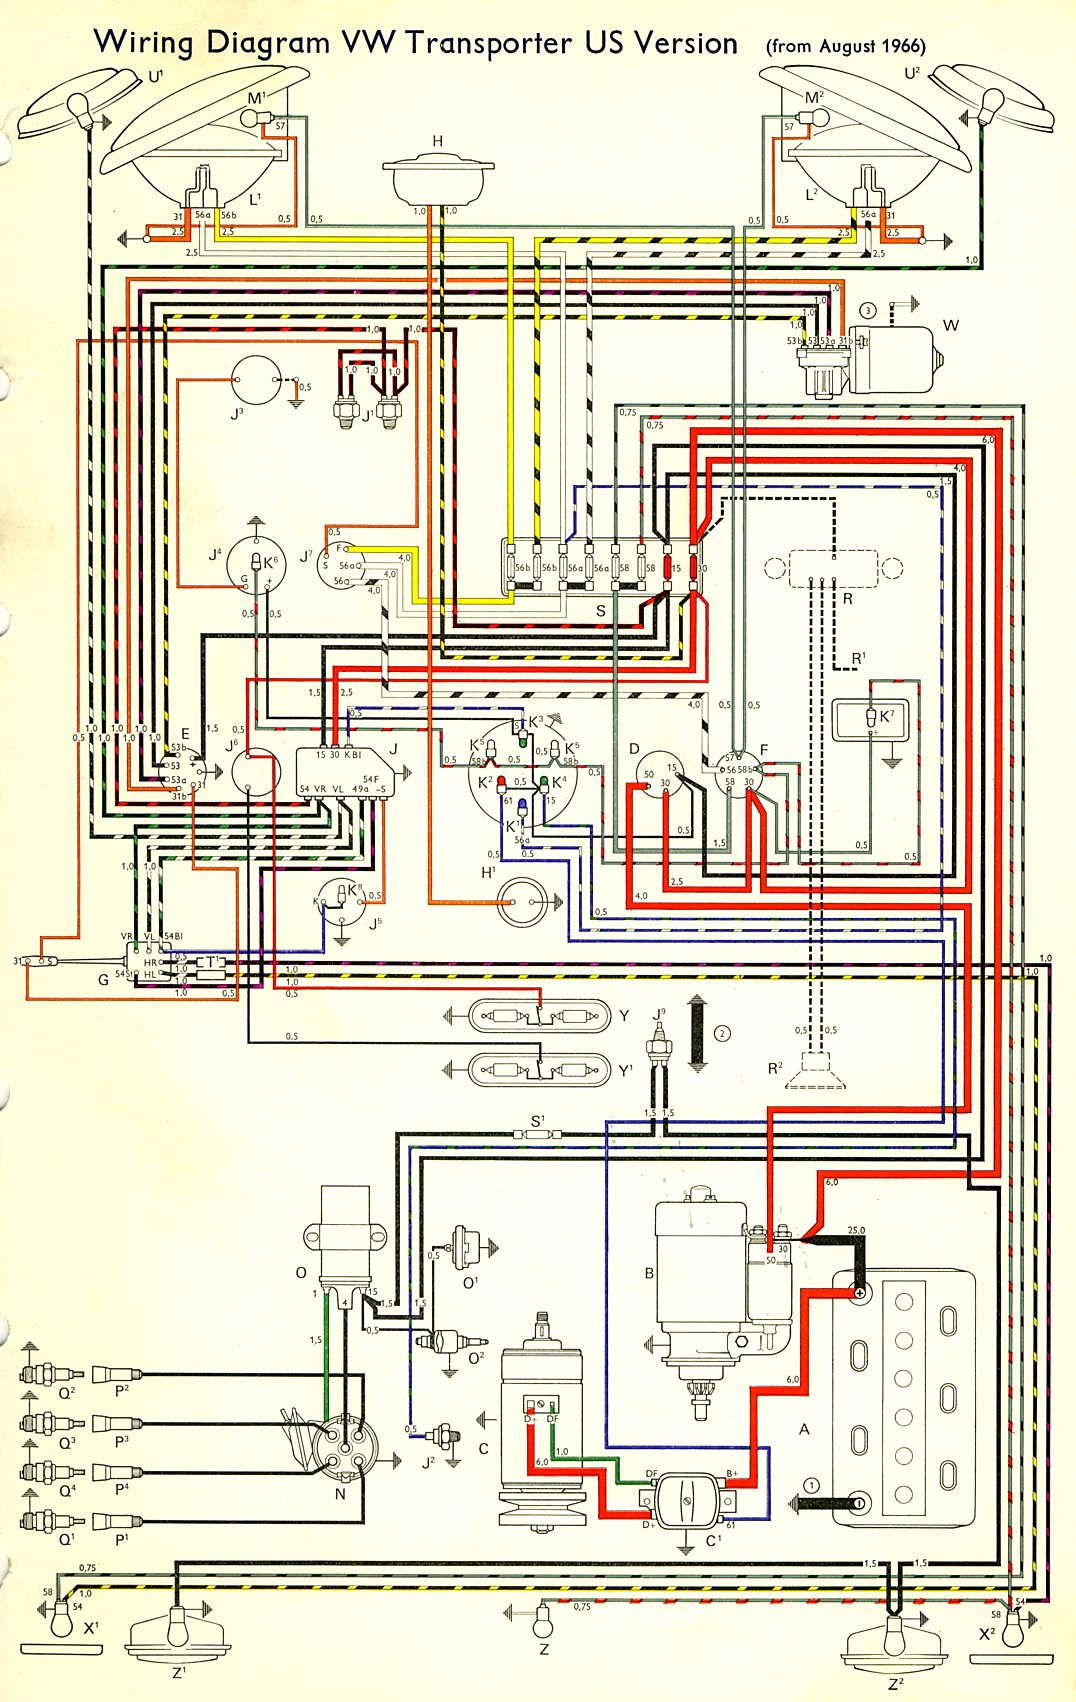 bus_67_USA 67 vw bus wiring harness 71 vw wiring harness \u2022 wiring diagrams 1975 vw beetle wiring harness at edmiracle.co